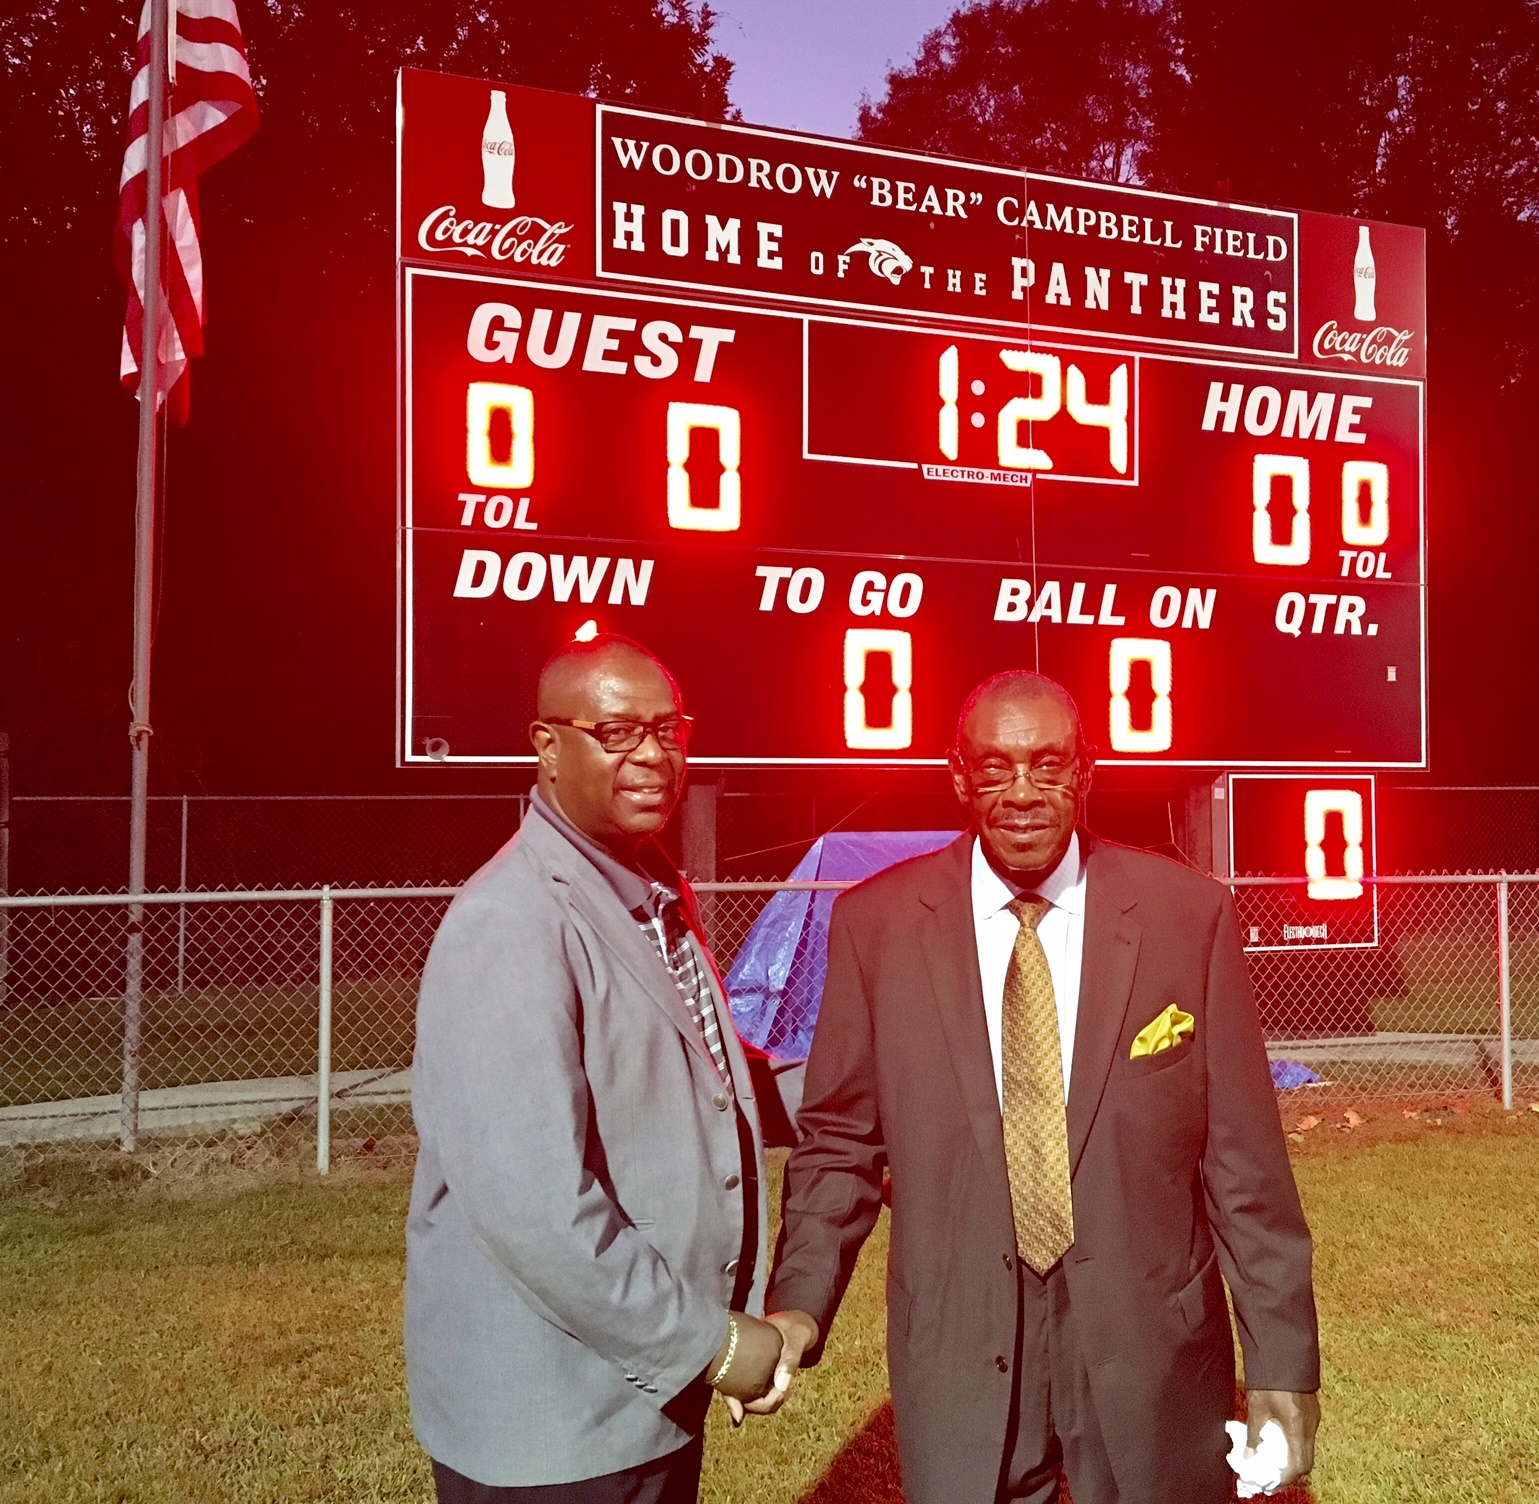 Marengo HS Field Renamed